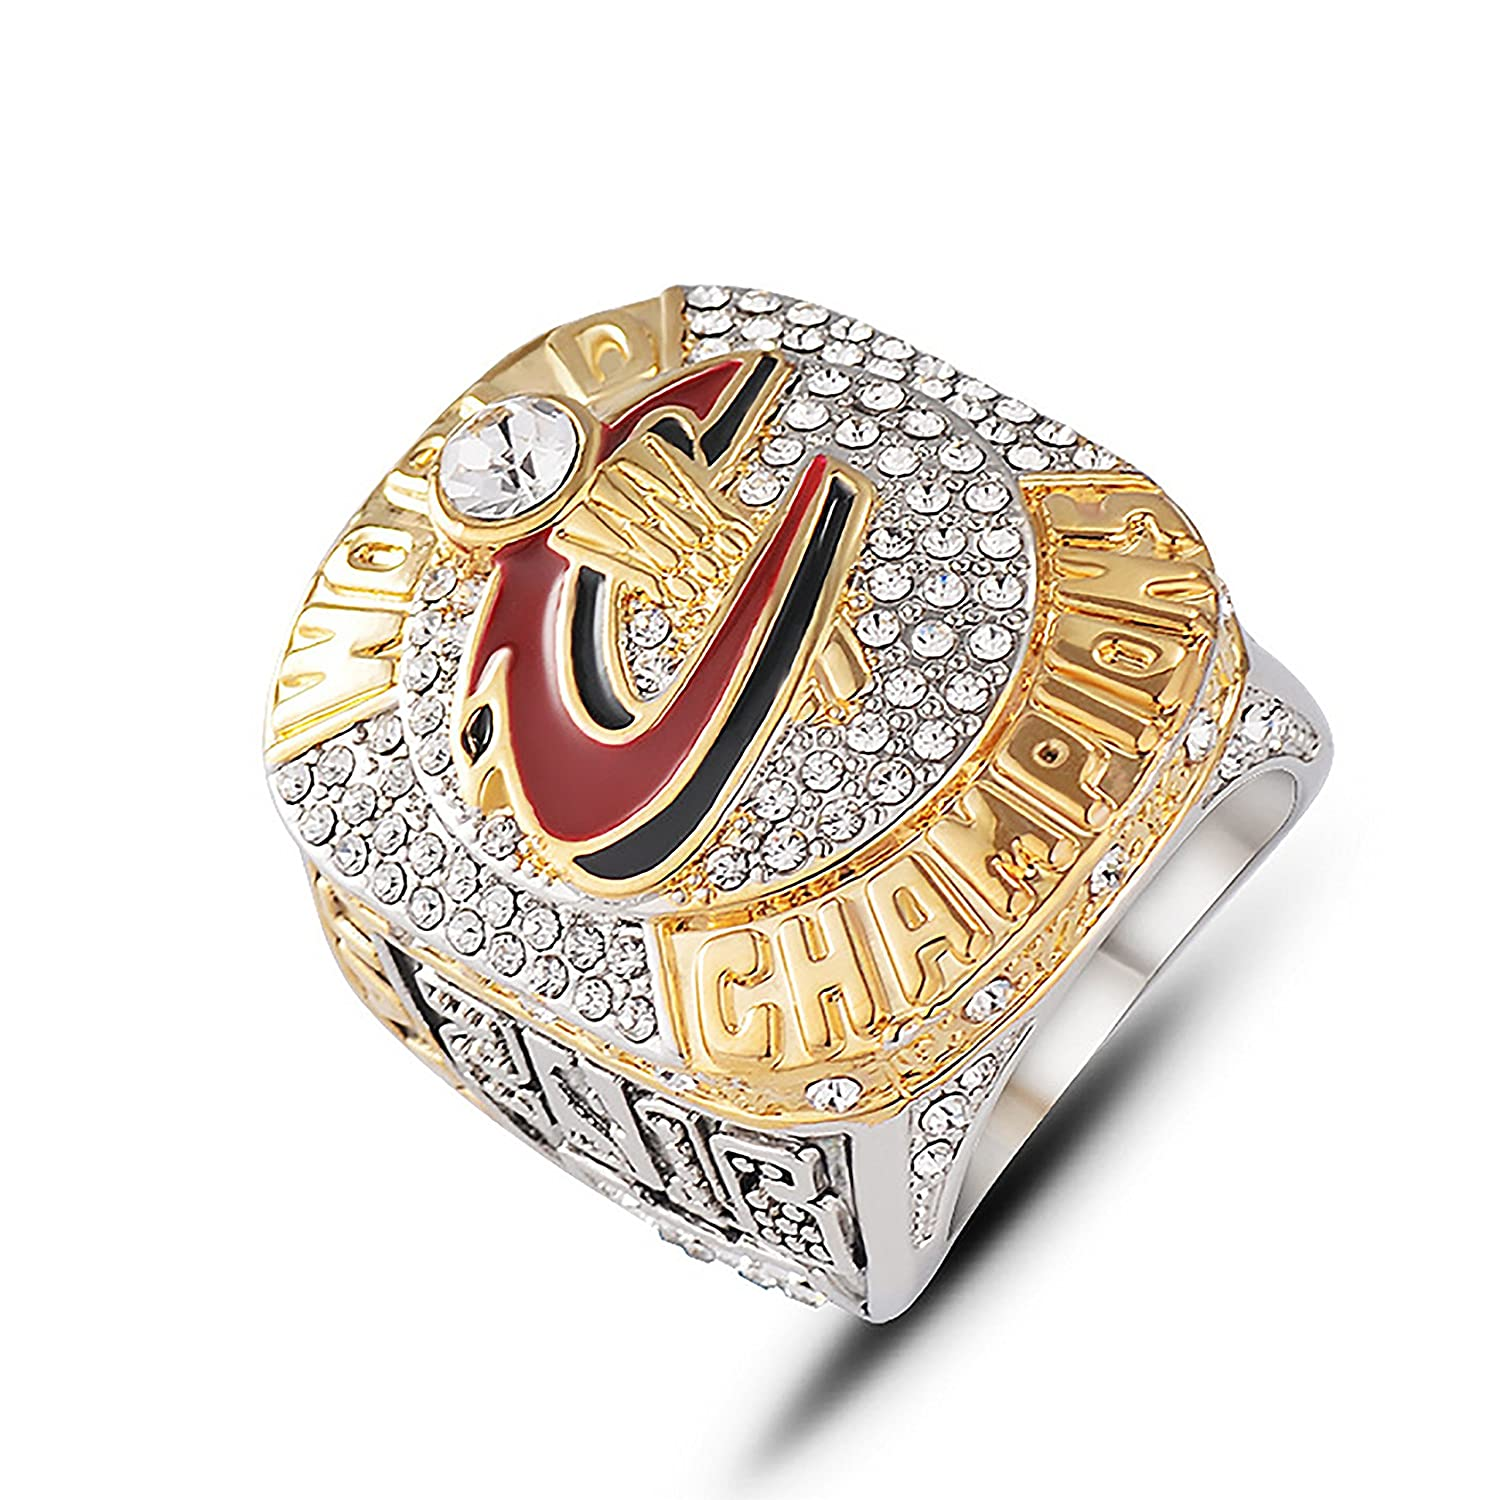 GF-sports store NBA 2016 Cleveland-Cavaliers James Championship Ring